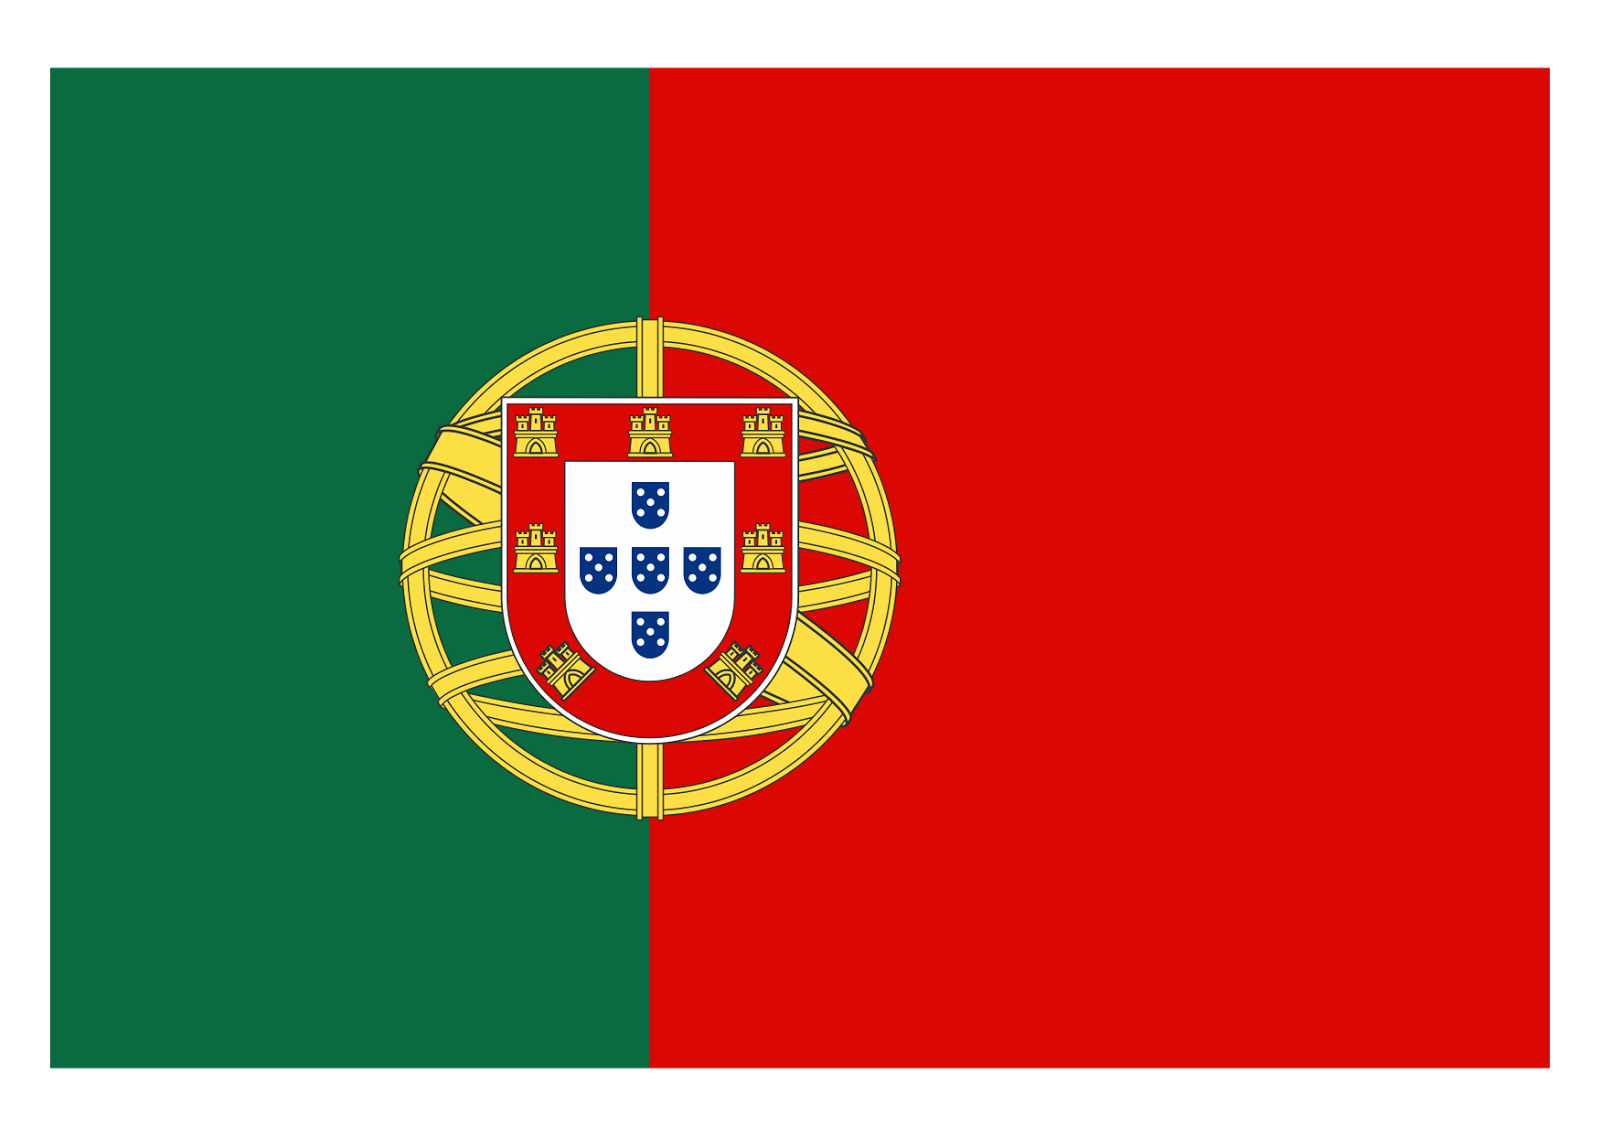 Portugal logo vector png #7008